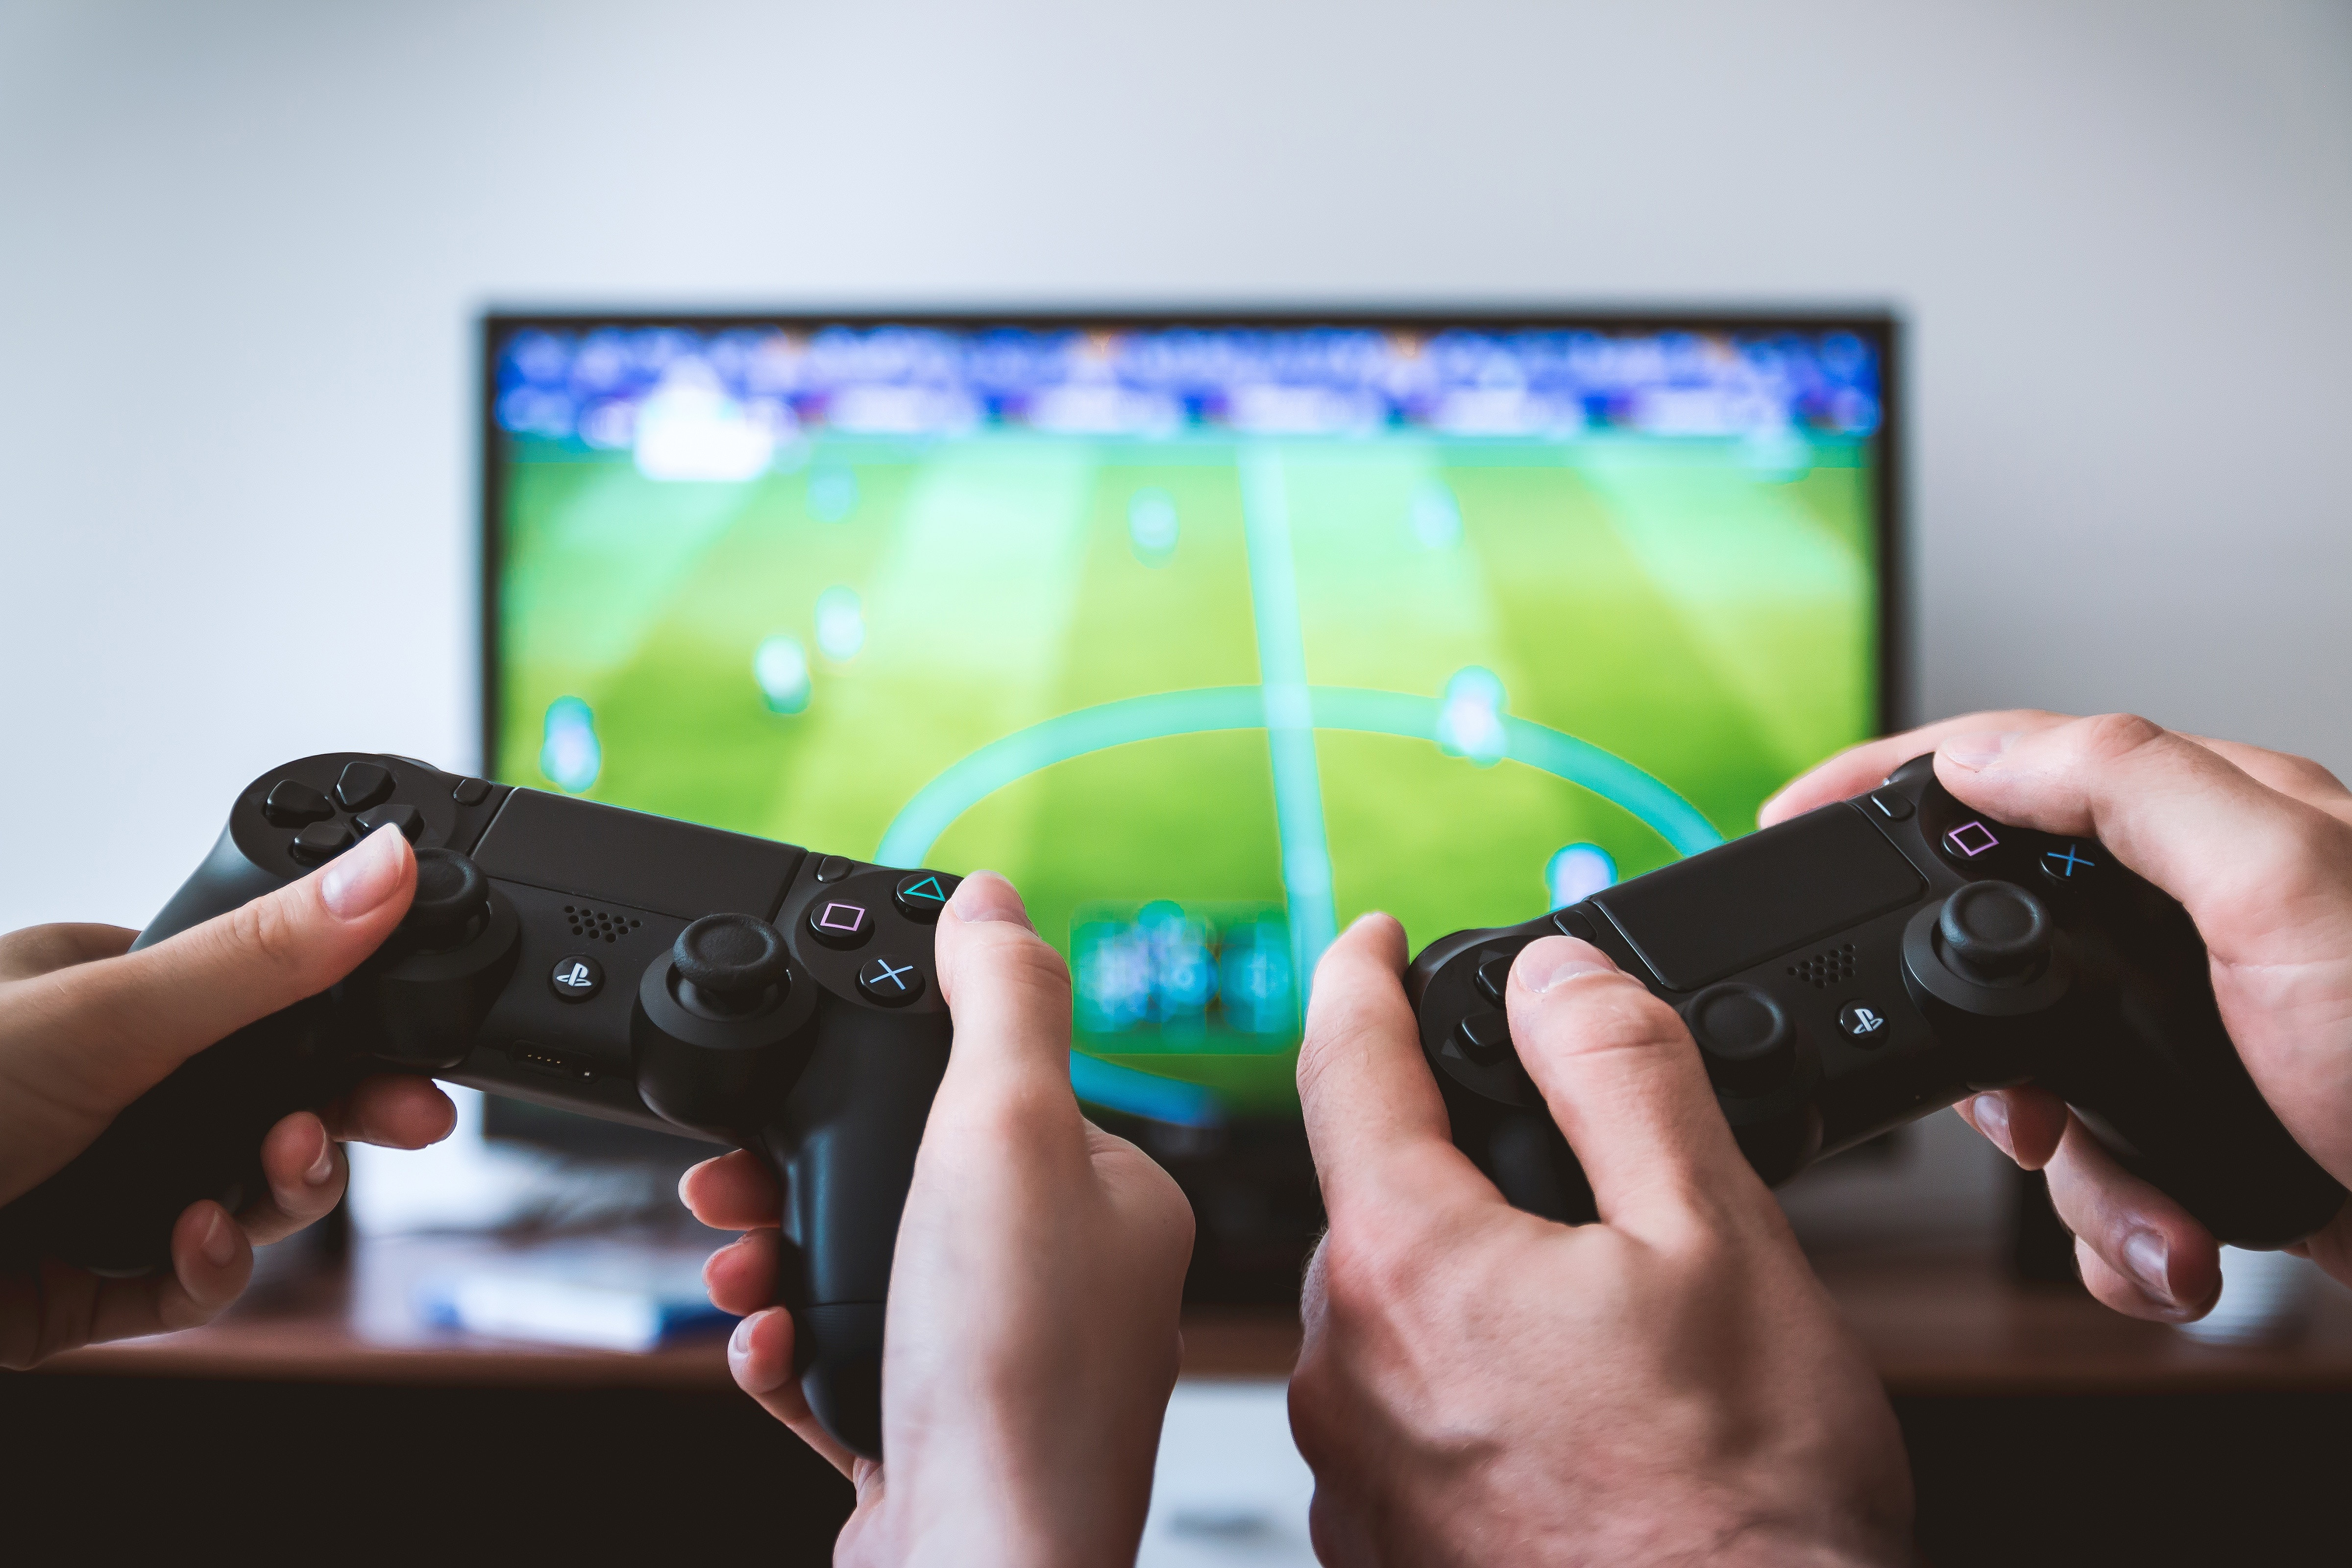 These video games can help mature gamers unwind — and increase their gray matter